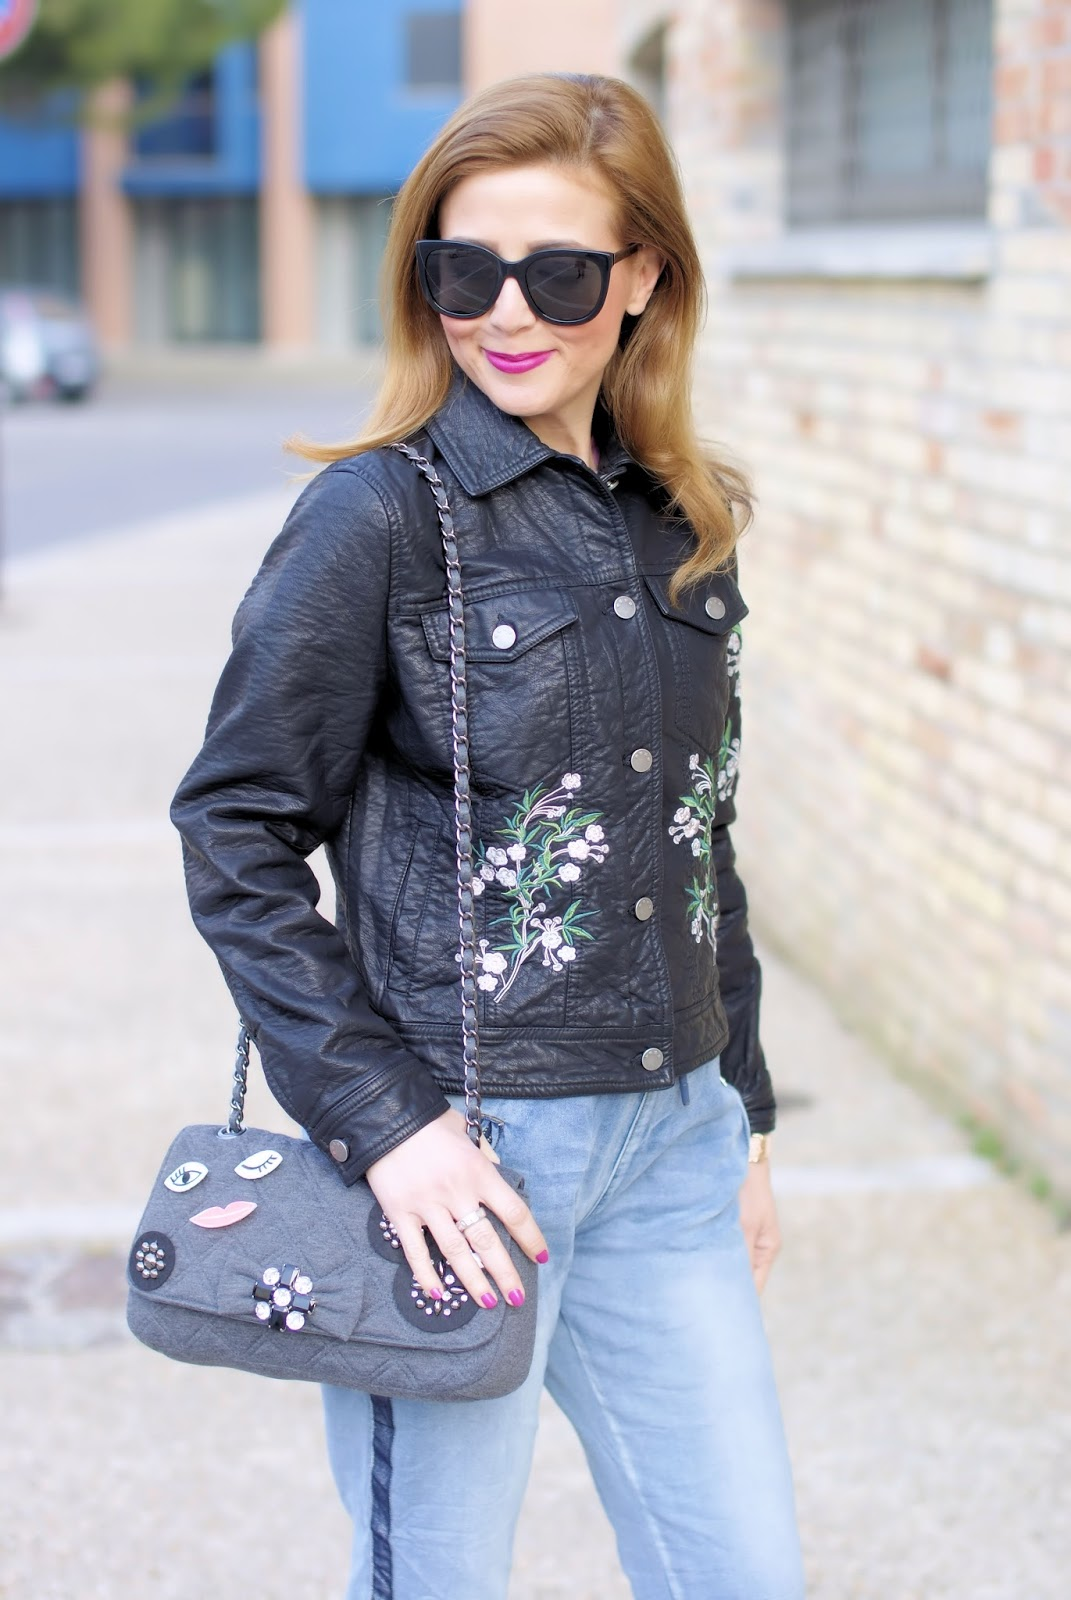 Trendyberry embroidered floral jacket on Fashion and Cookies fashion blog, fashion blogger style